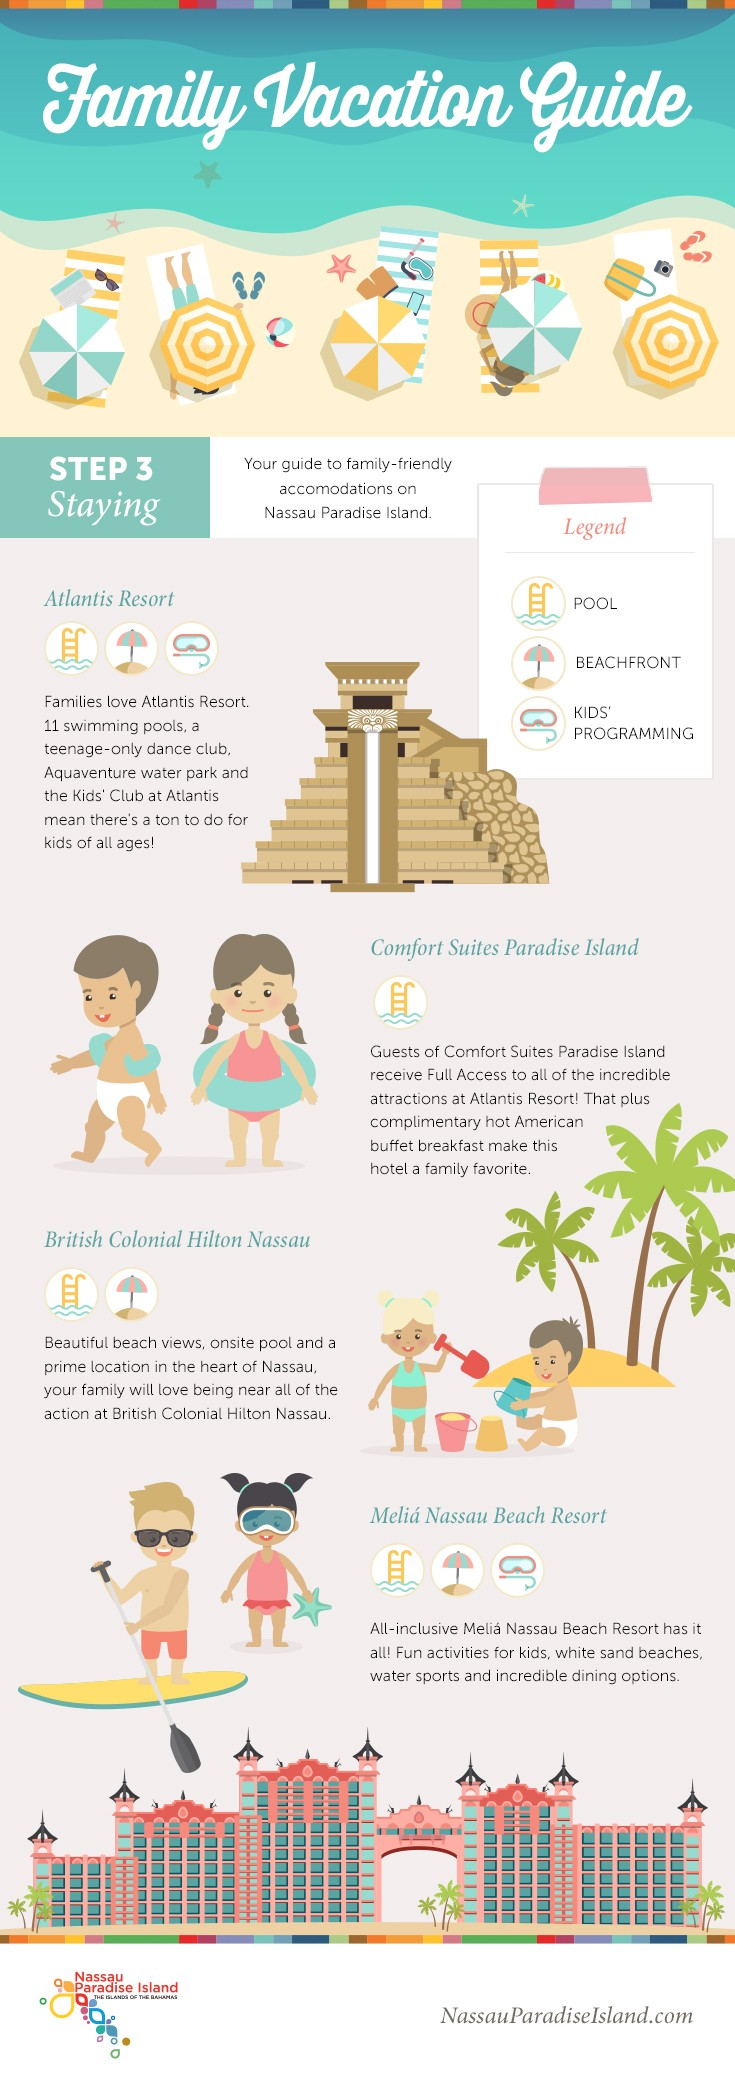 Family vacation guide infographic on family-friendly accommodations in Nassau Paradise Island.